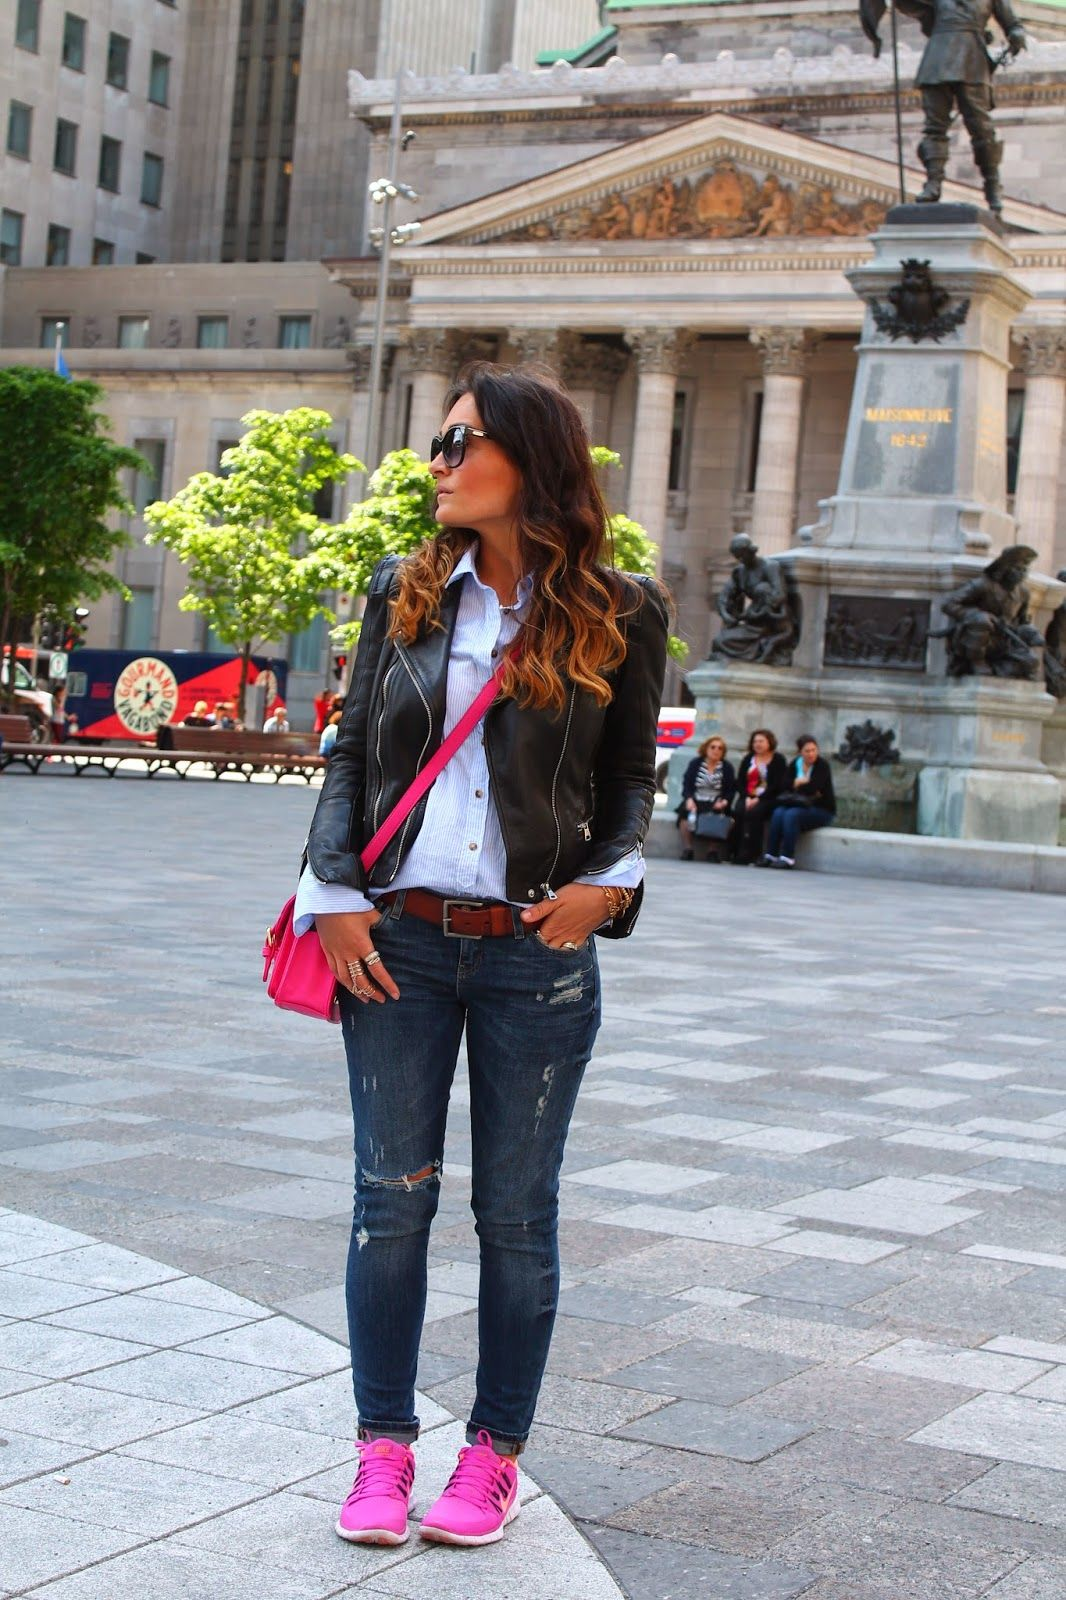 outfit with sneakers, nike pink sneakers, outfit inspiration with sneakers,  distressed jeans outfit